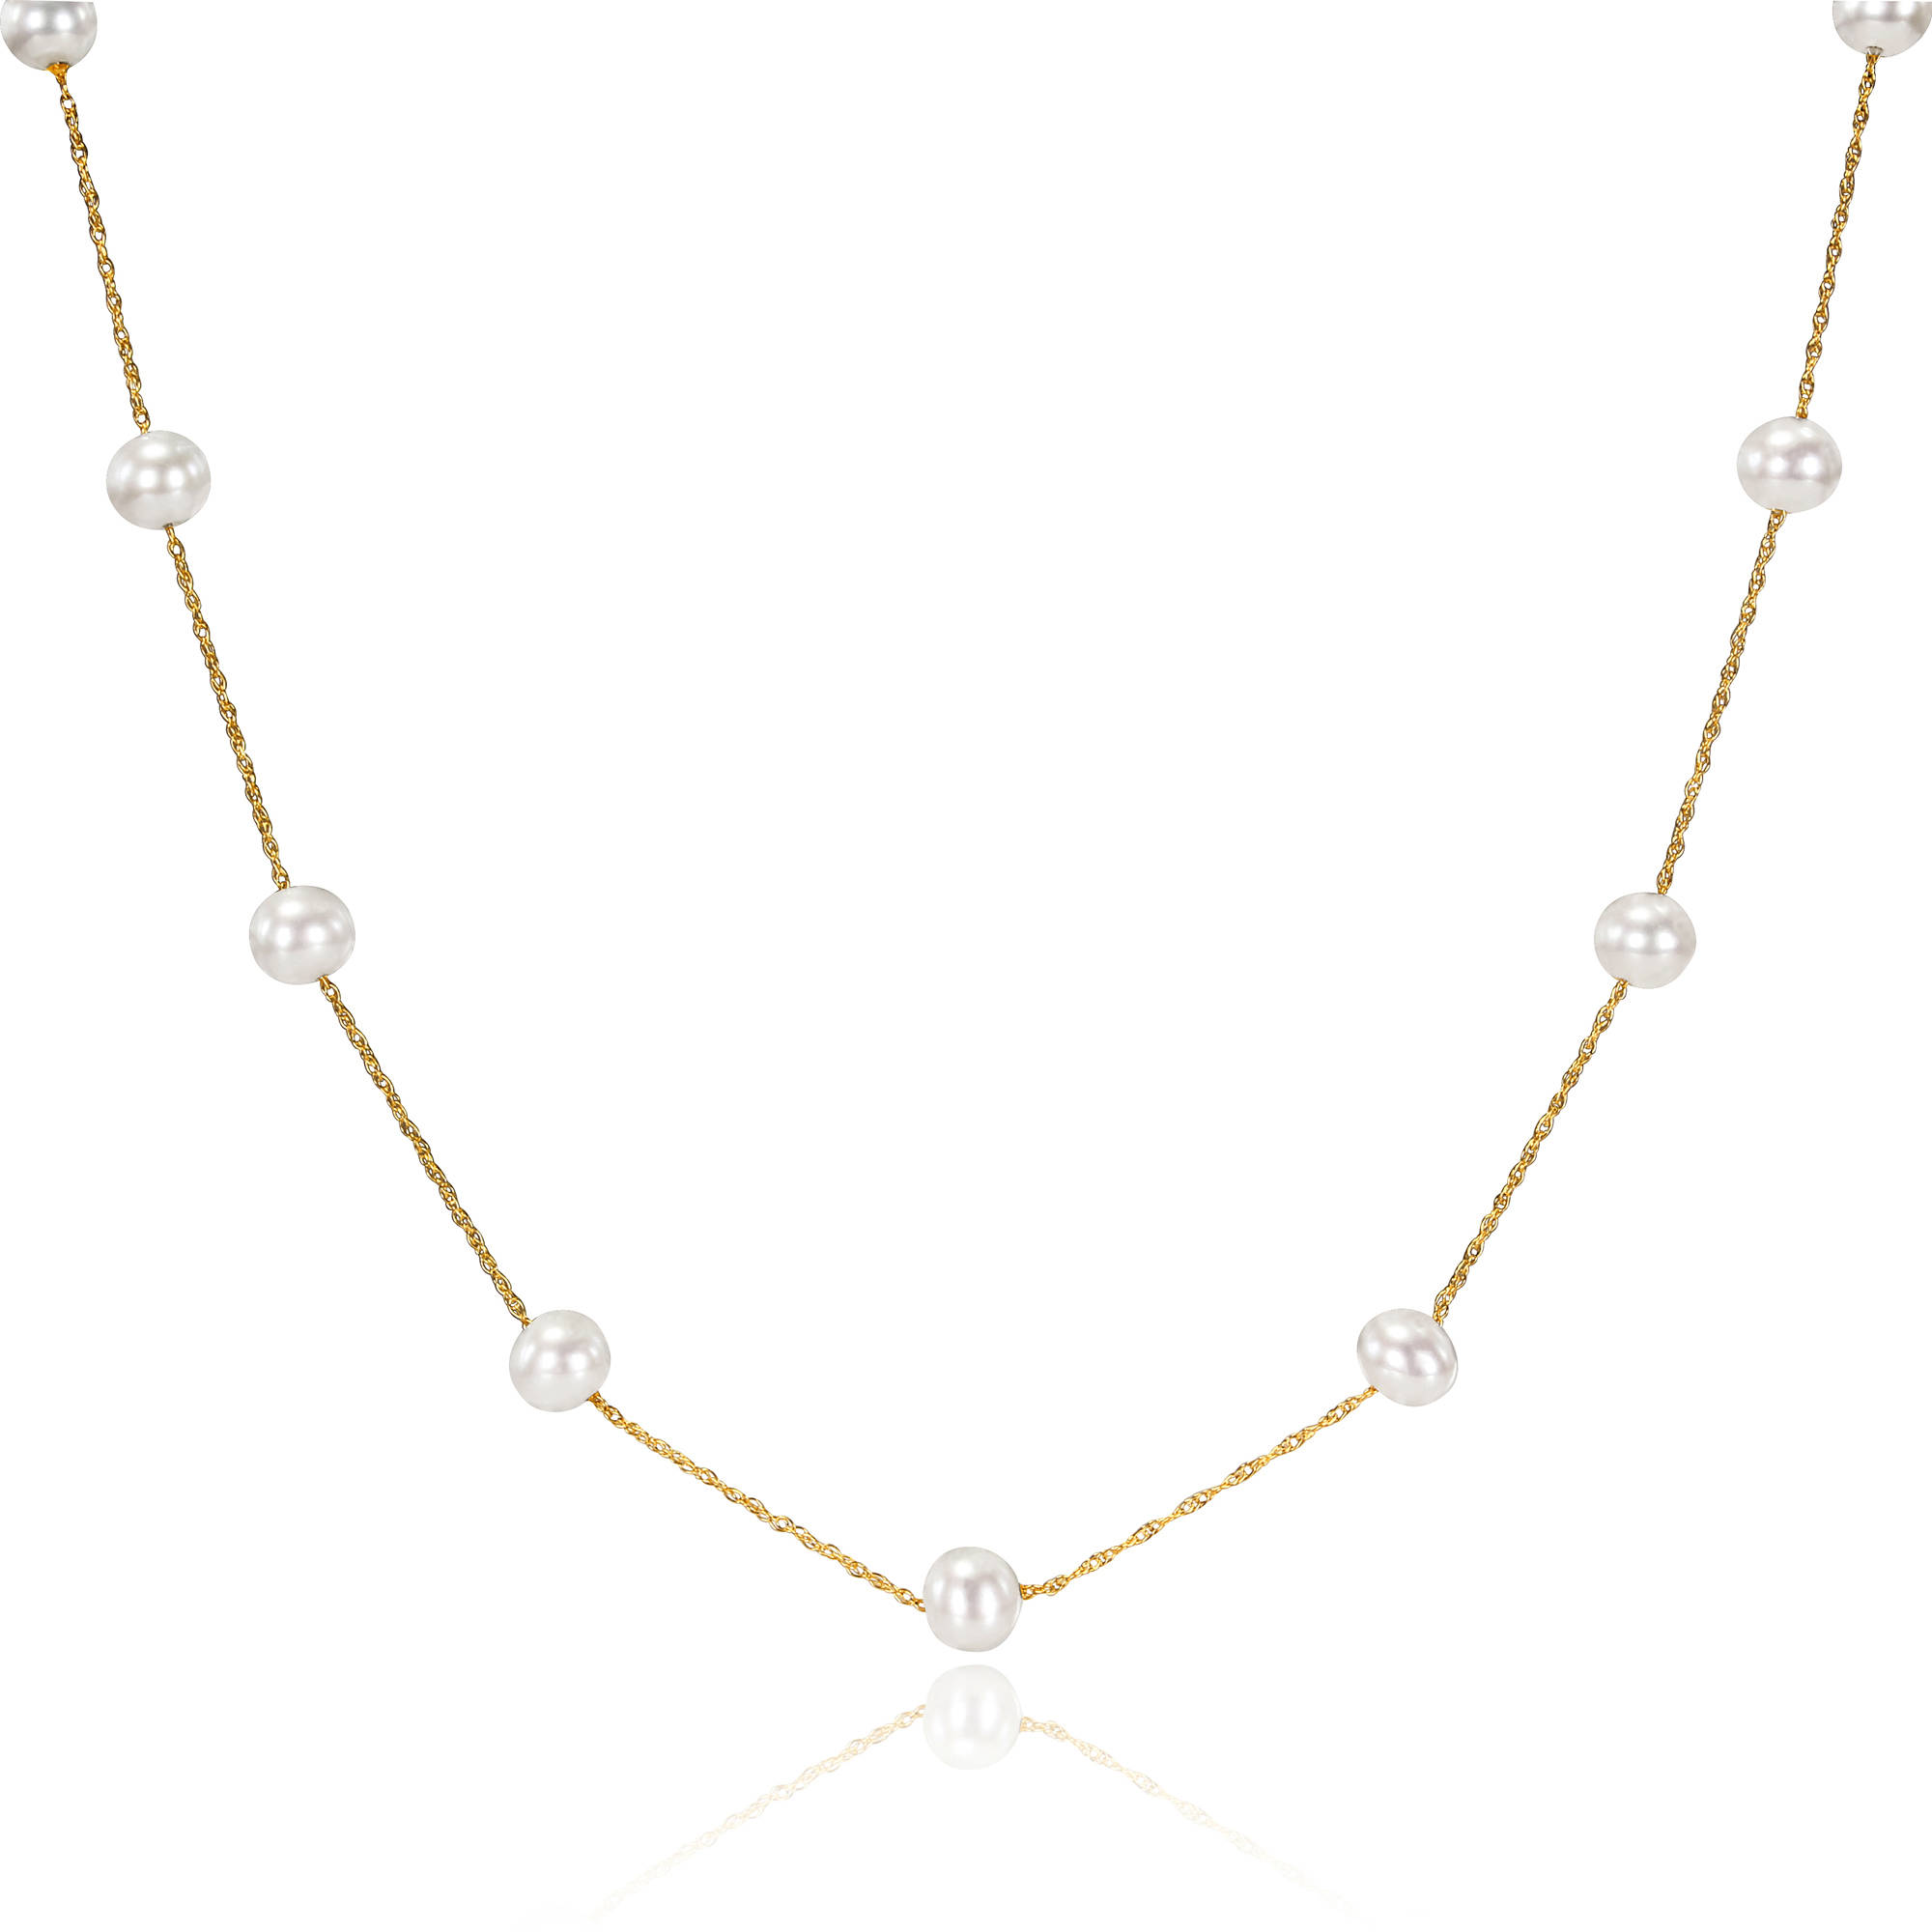 Miabella 5.5-6mm White Freshwater Cultured Pearl 10kt Yellow Gold Tin-Cup Necklace, 17